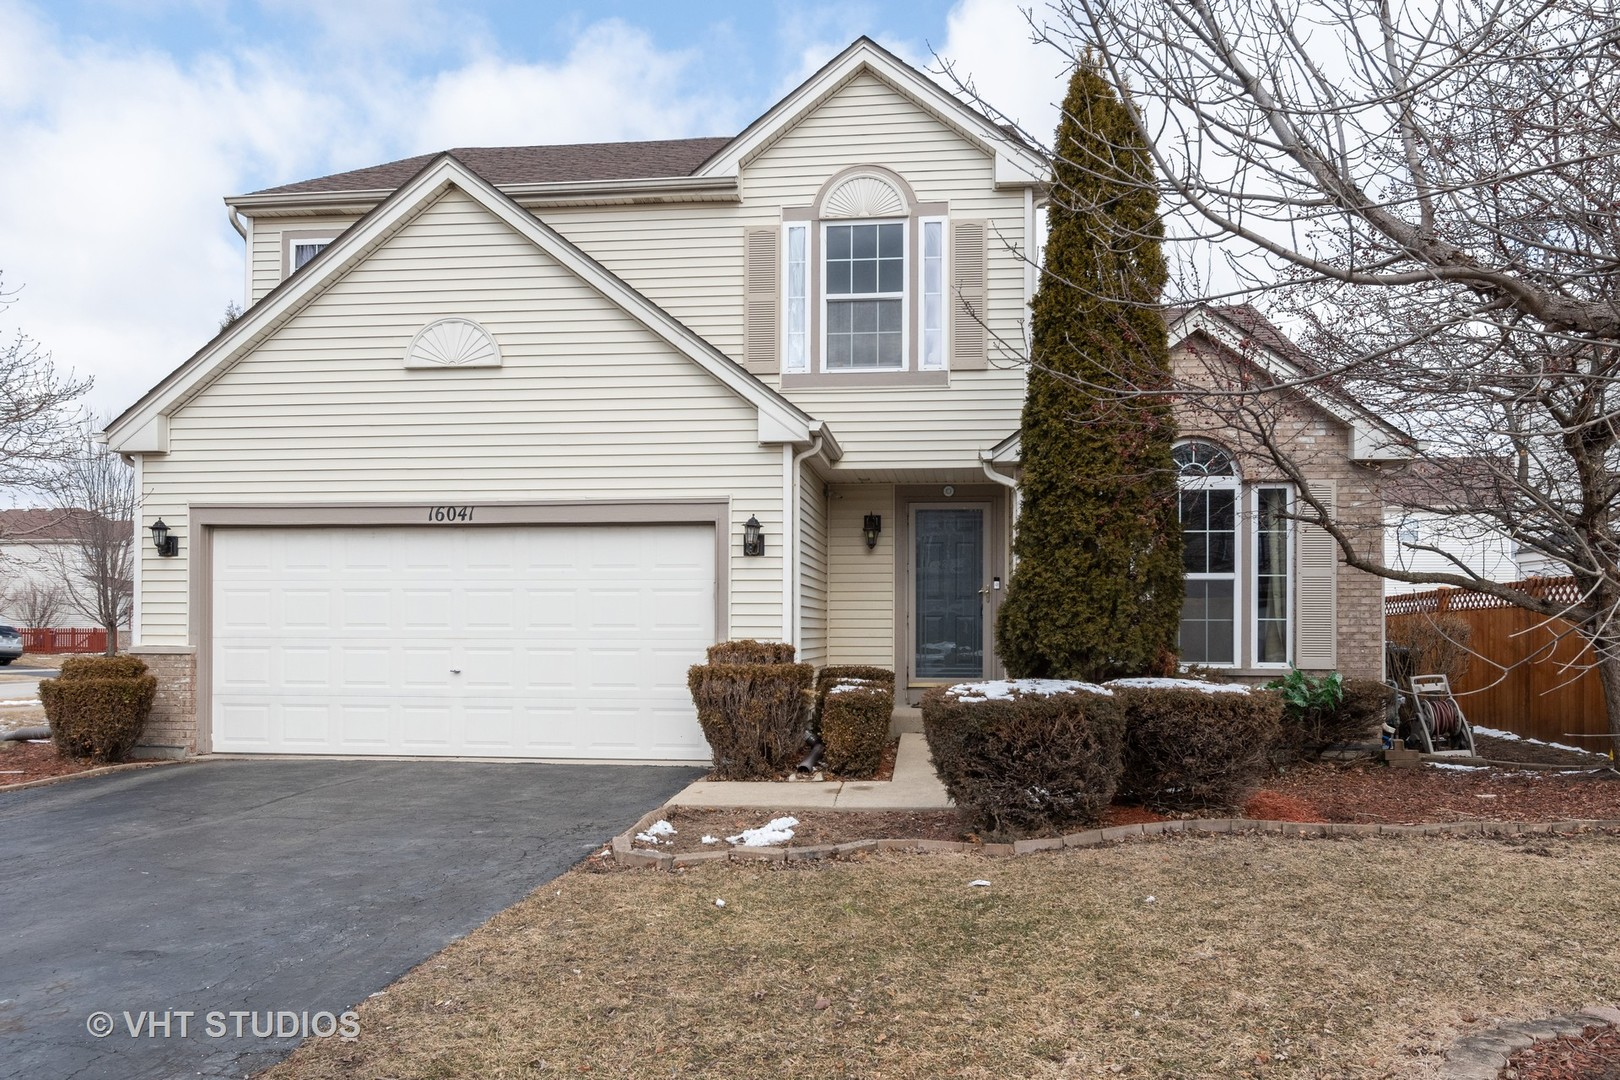 16041 Arborvitae, Crest Hill, Illinois, 60403